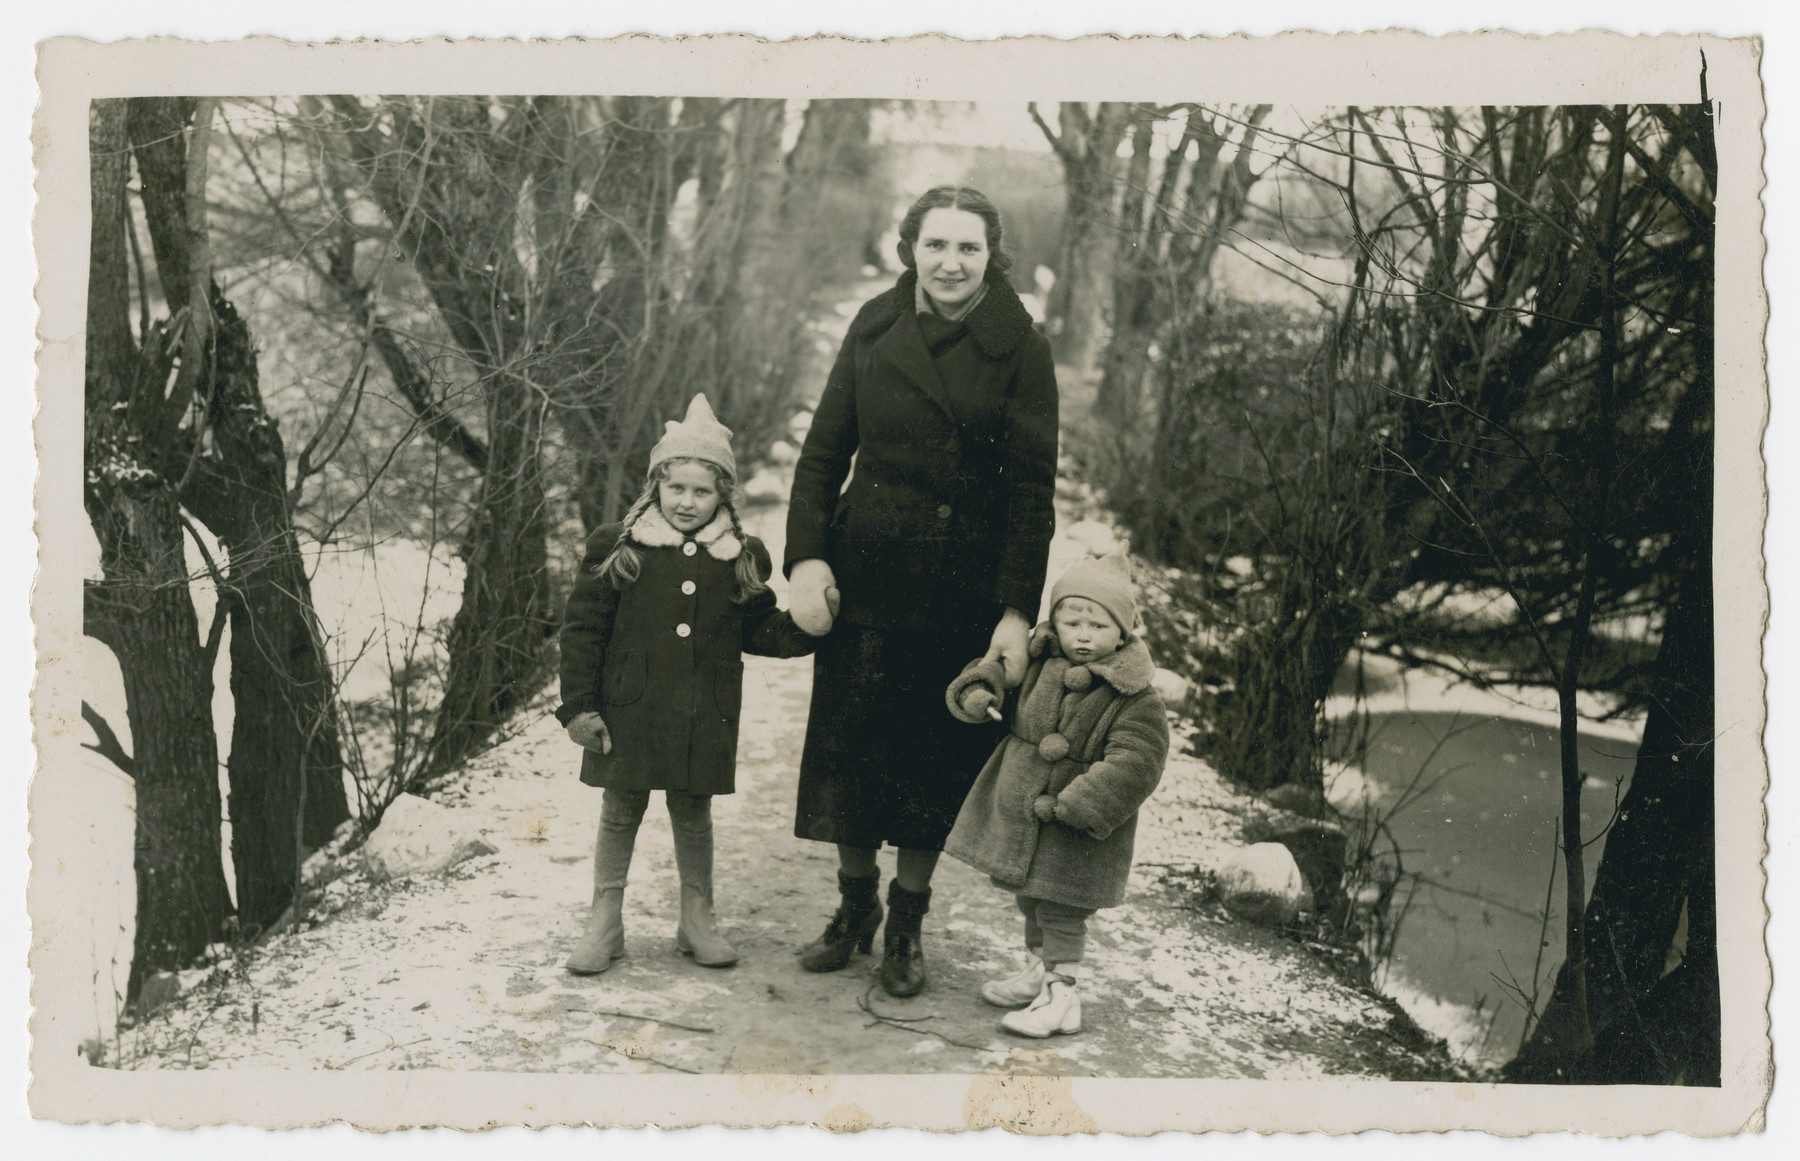 A mother walks with her two children in a park in prewar Butrimonys.  Part of a collection of photographs depicting Jews from Butrimonys where some 750 Jews were rounded up and murdered by the Einsatzgruppen and Lithuanian collaborators after the invasion of the USSR.